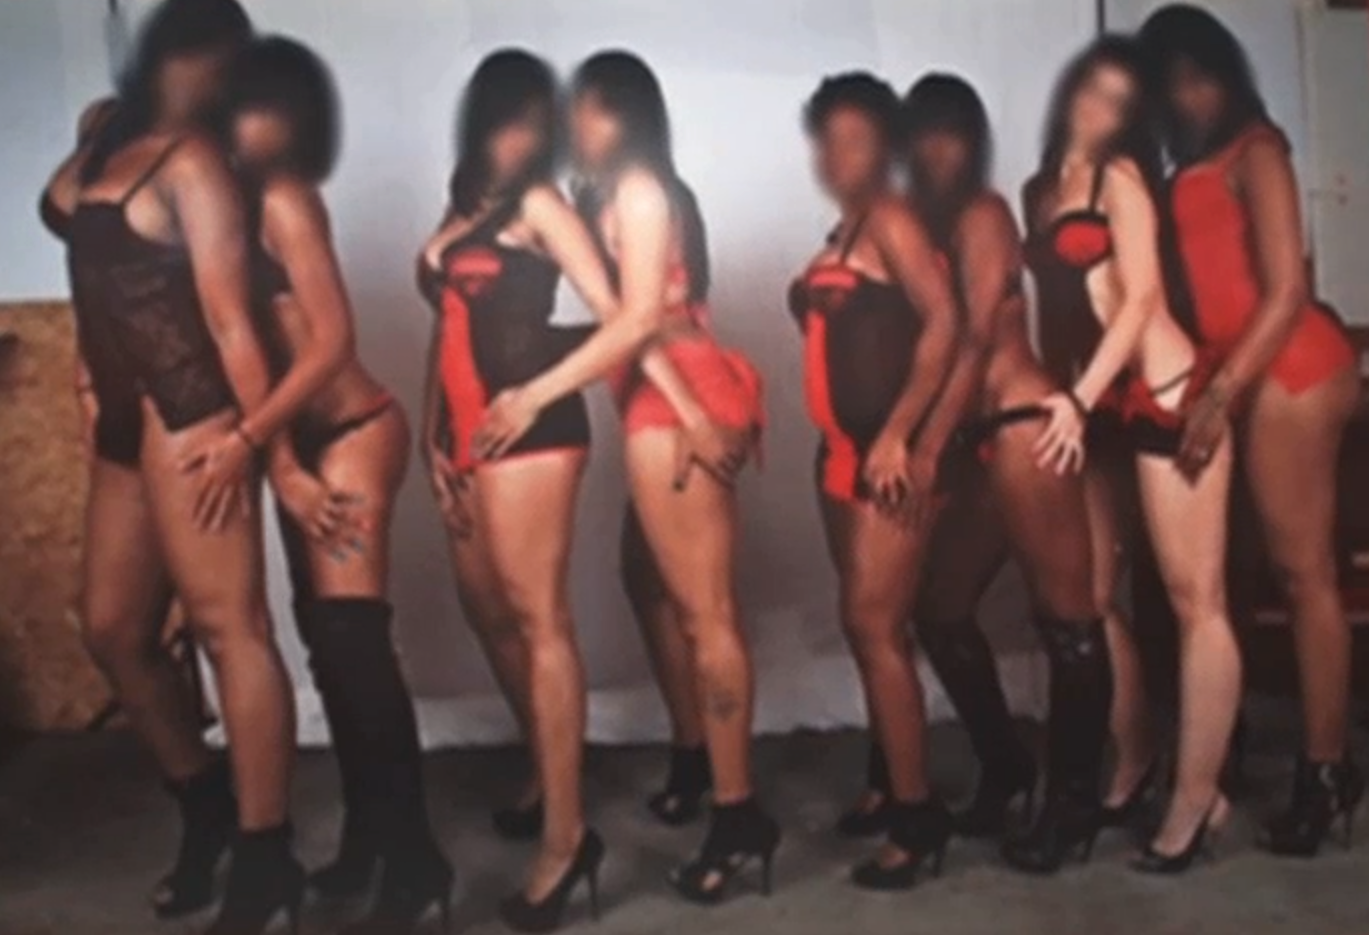 zona prostitutas barcelona es legal la prostitución